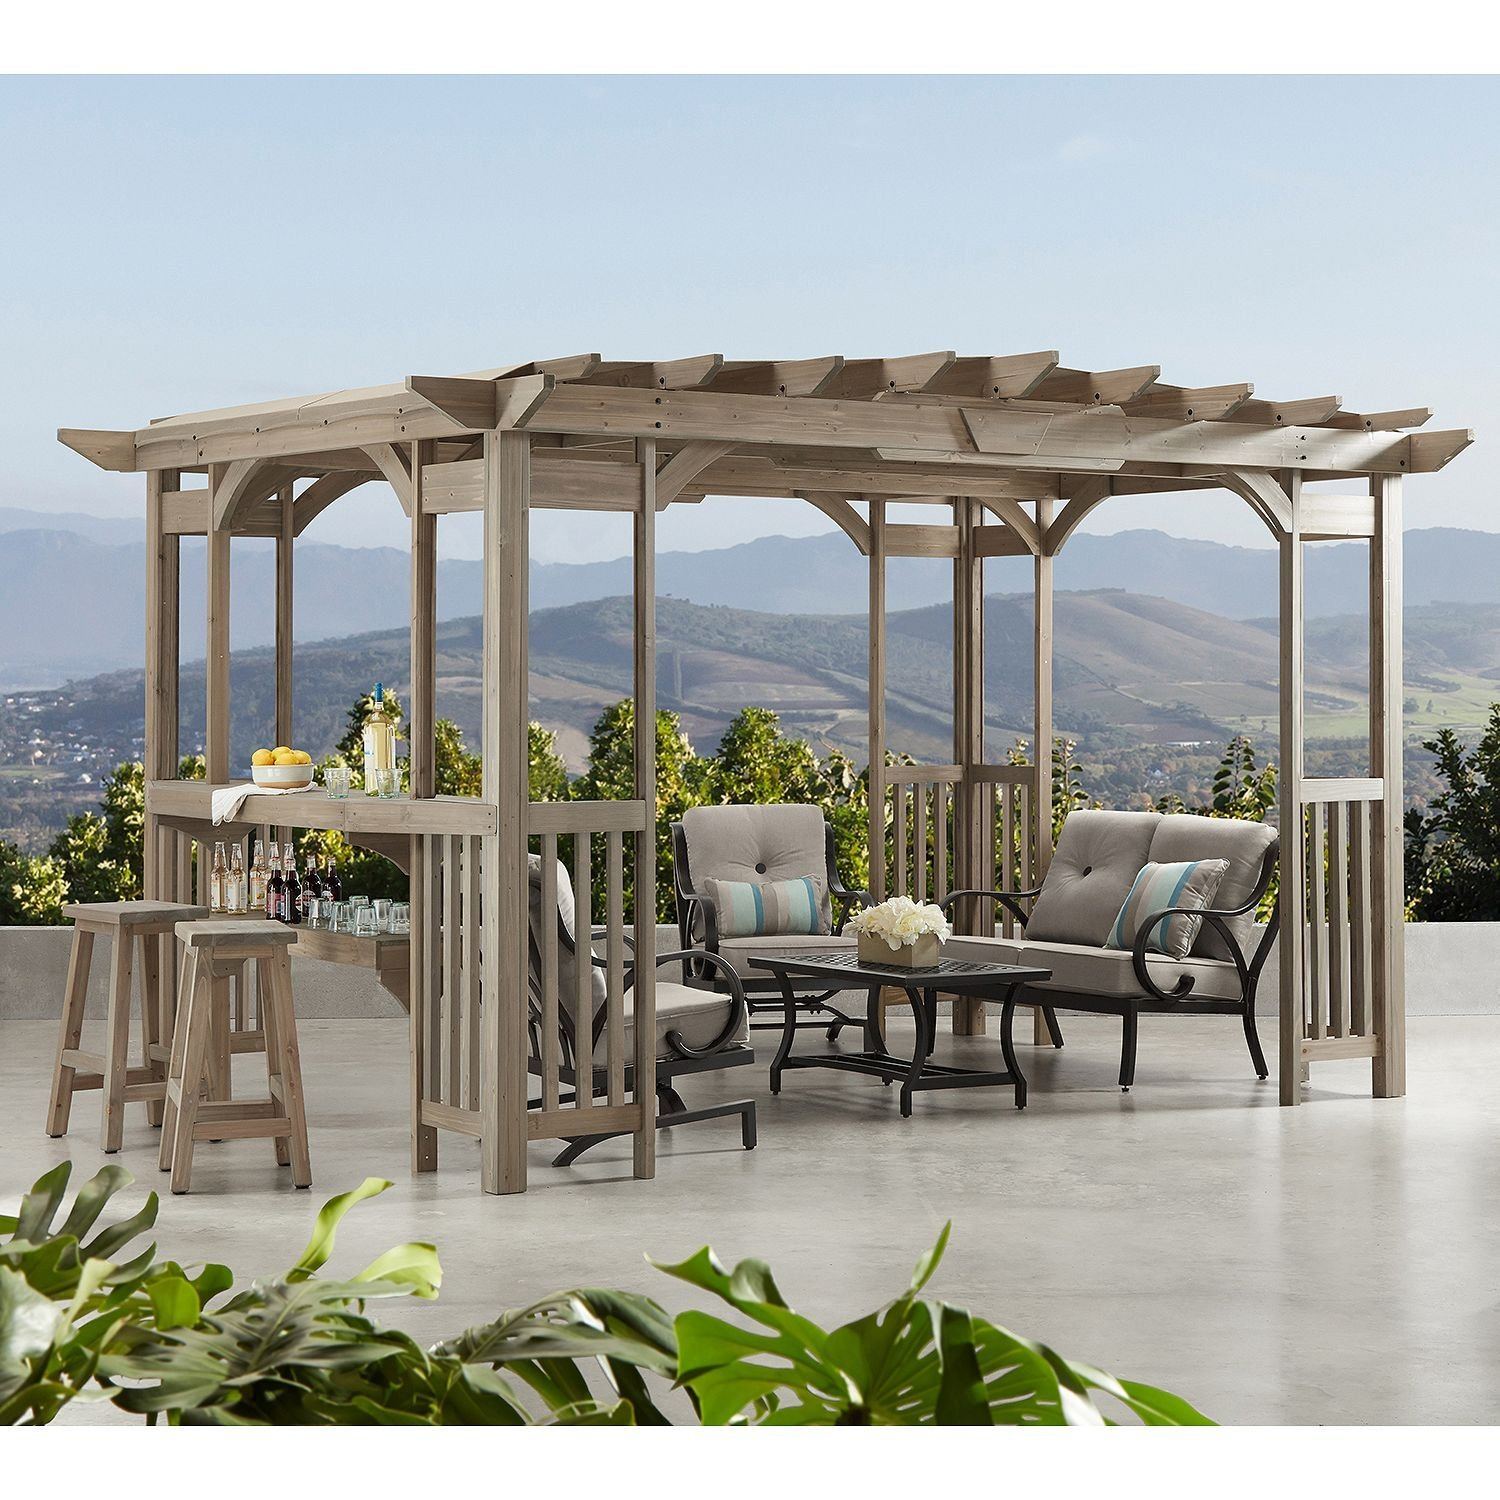 Pergola Designs Cheap Gazebo Pergola Designs Find Gazebo Pergola Designs Deals On